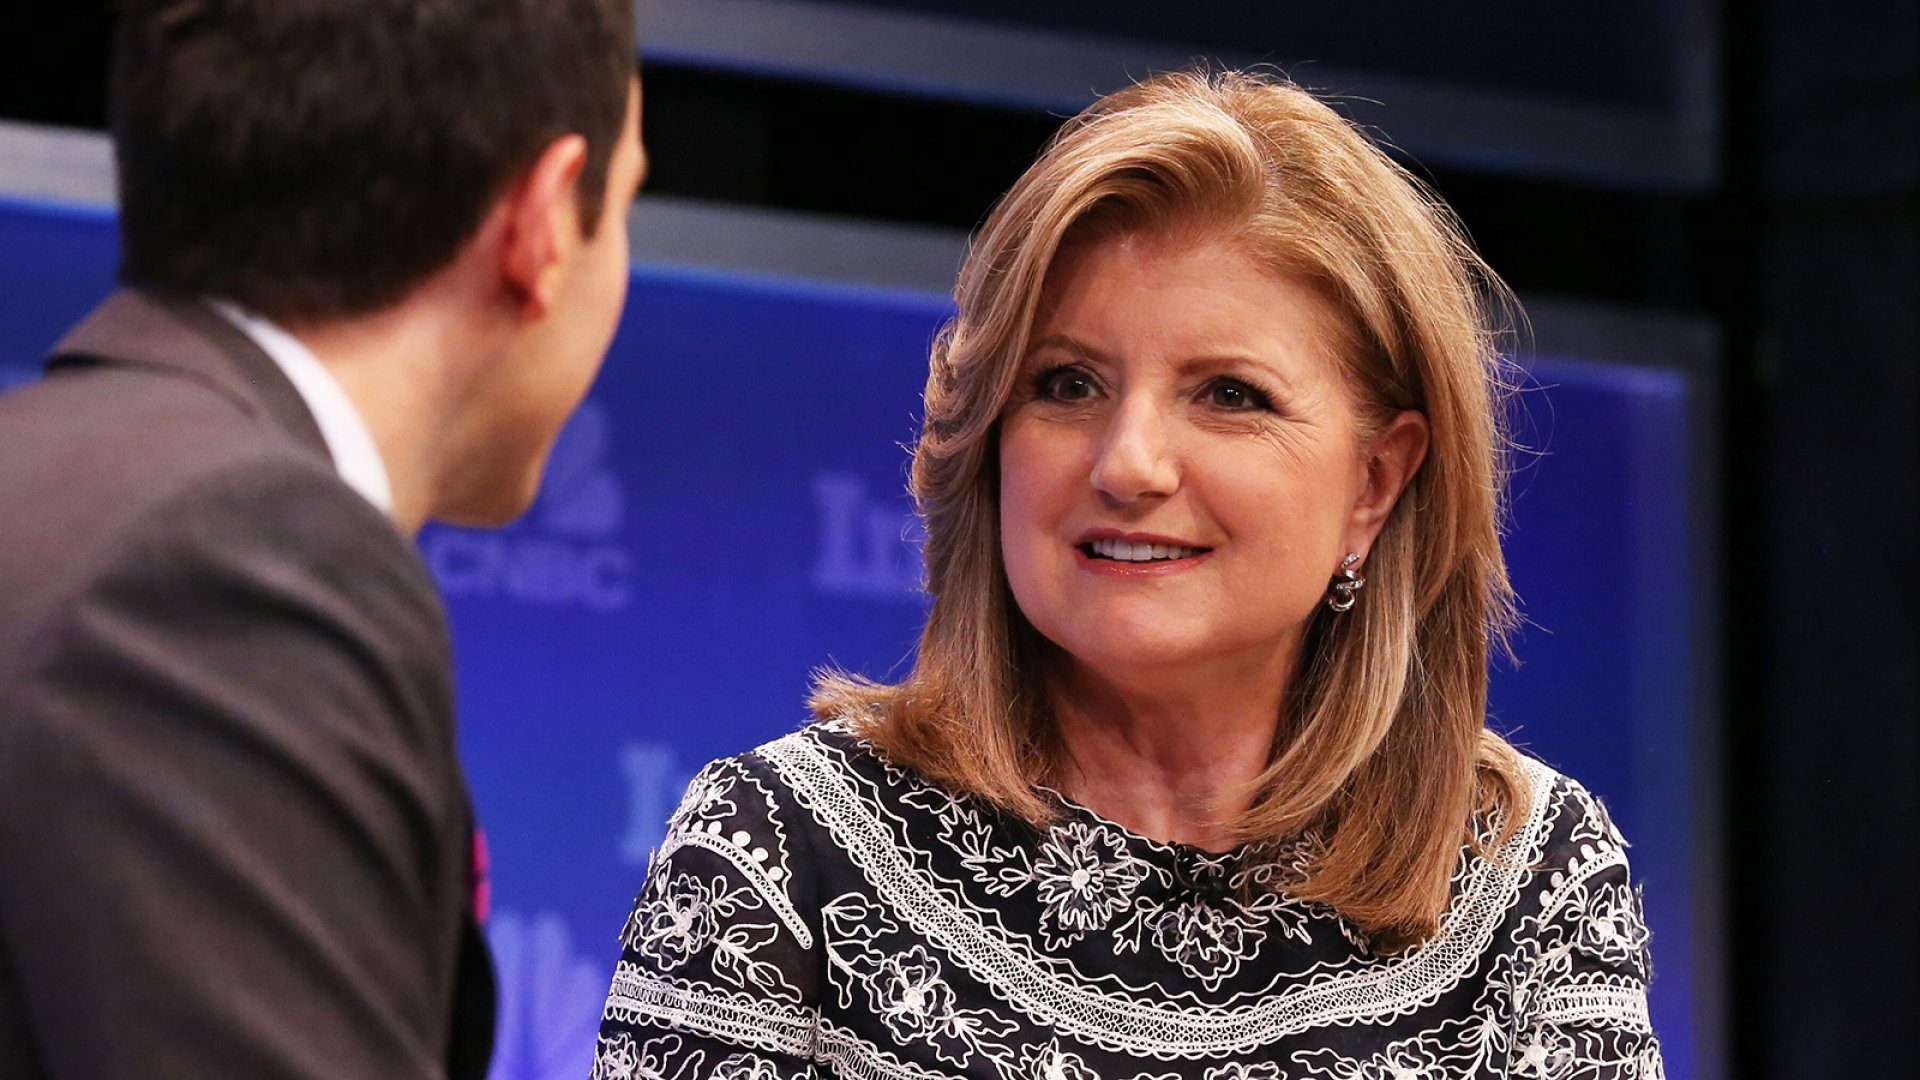 The 1 Thing Arianna Huffington Always Does in Job Interviews